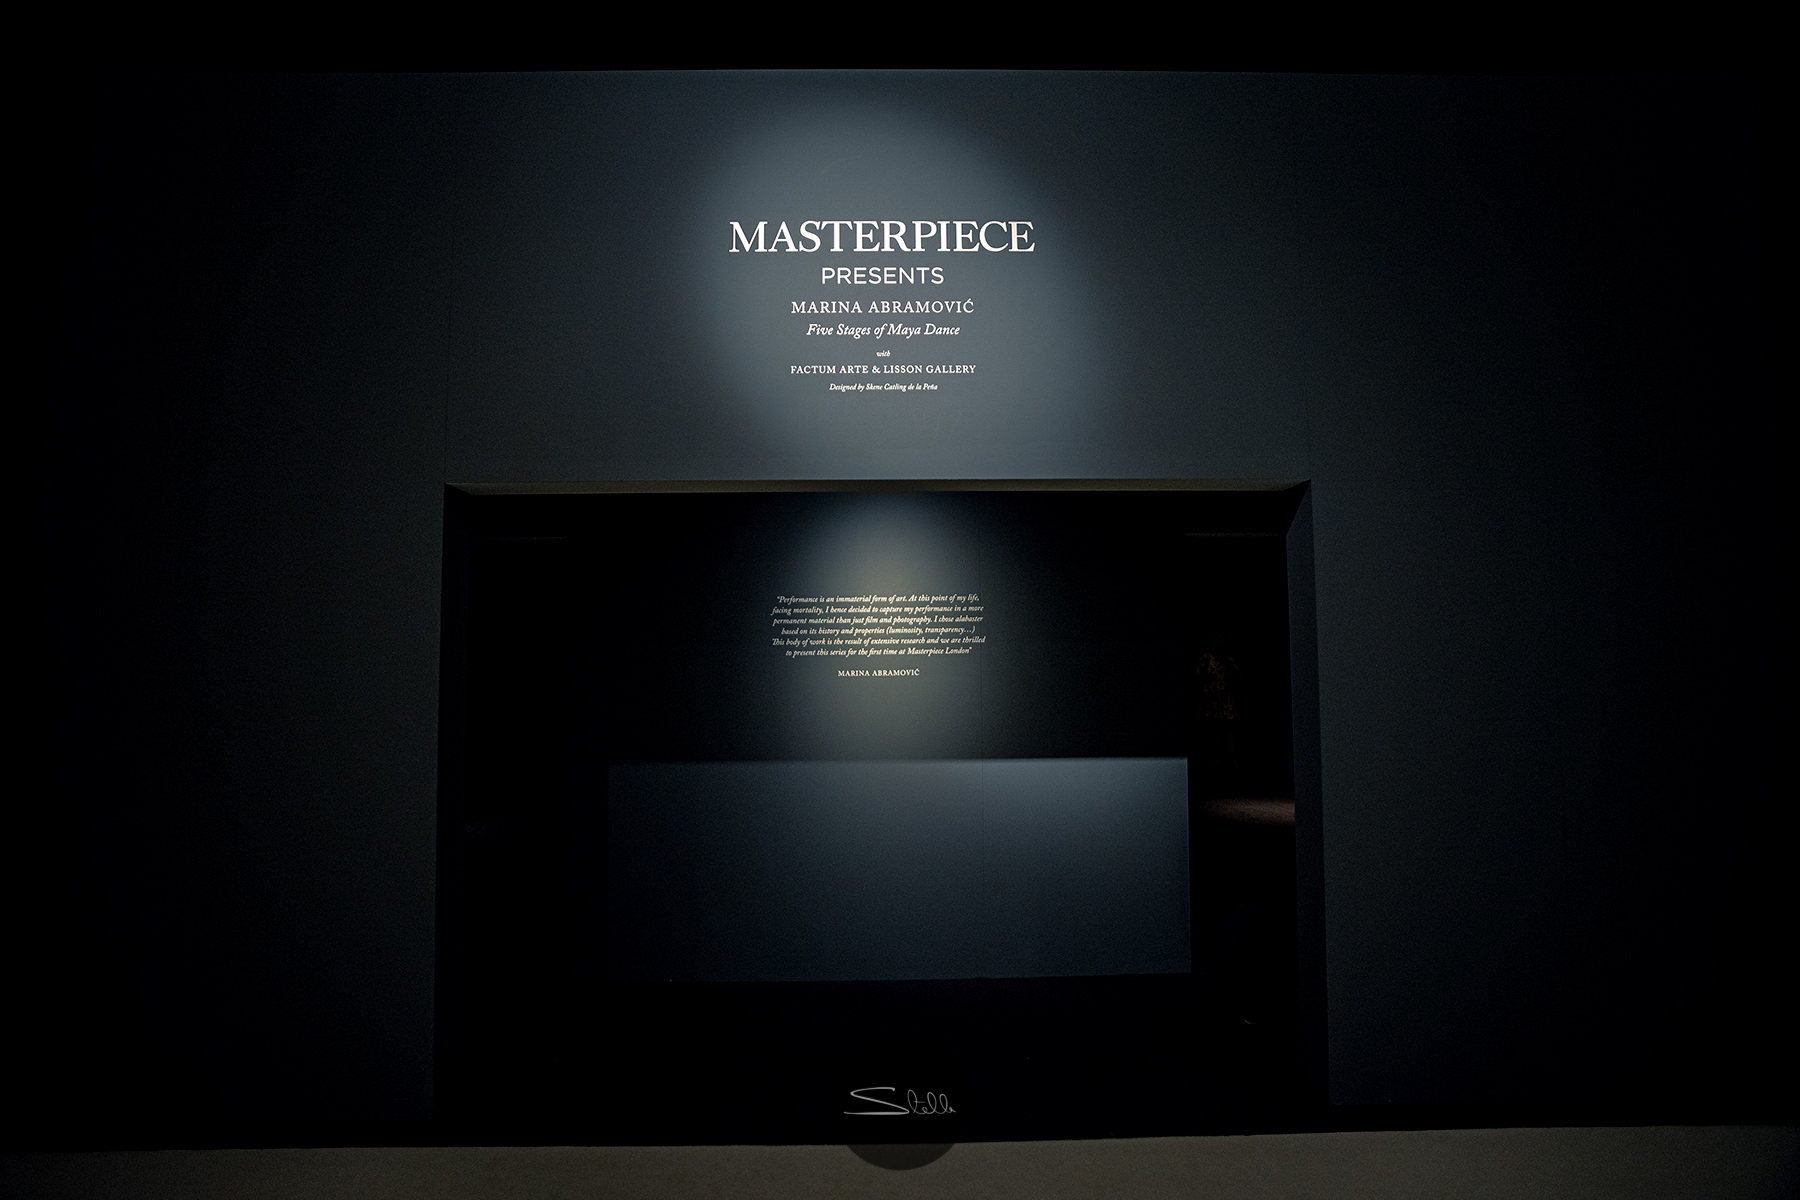 Masterpiece 2018 39 Watermarked.jpg